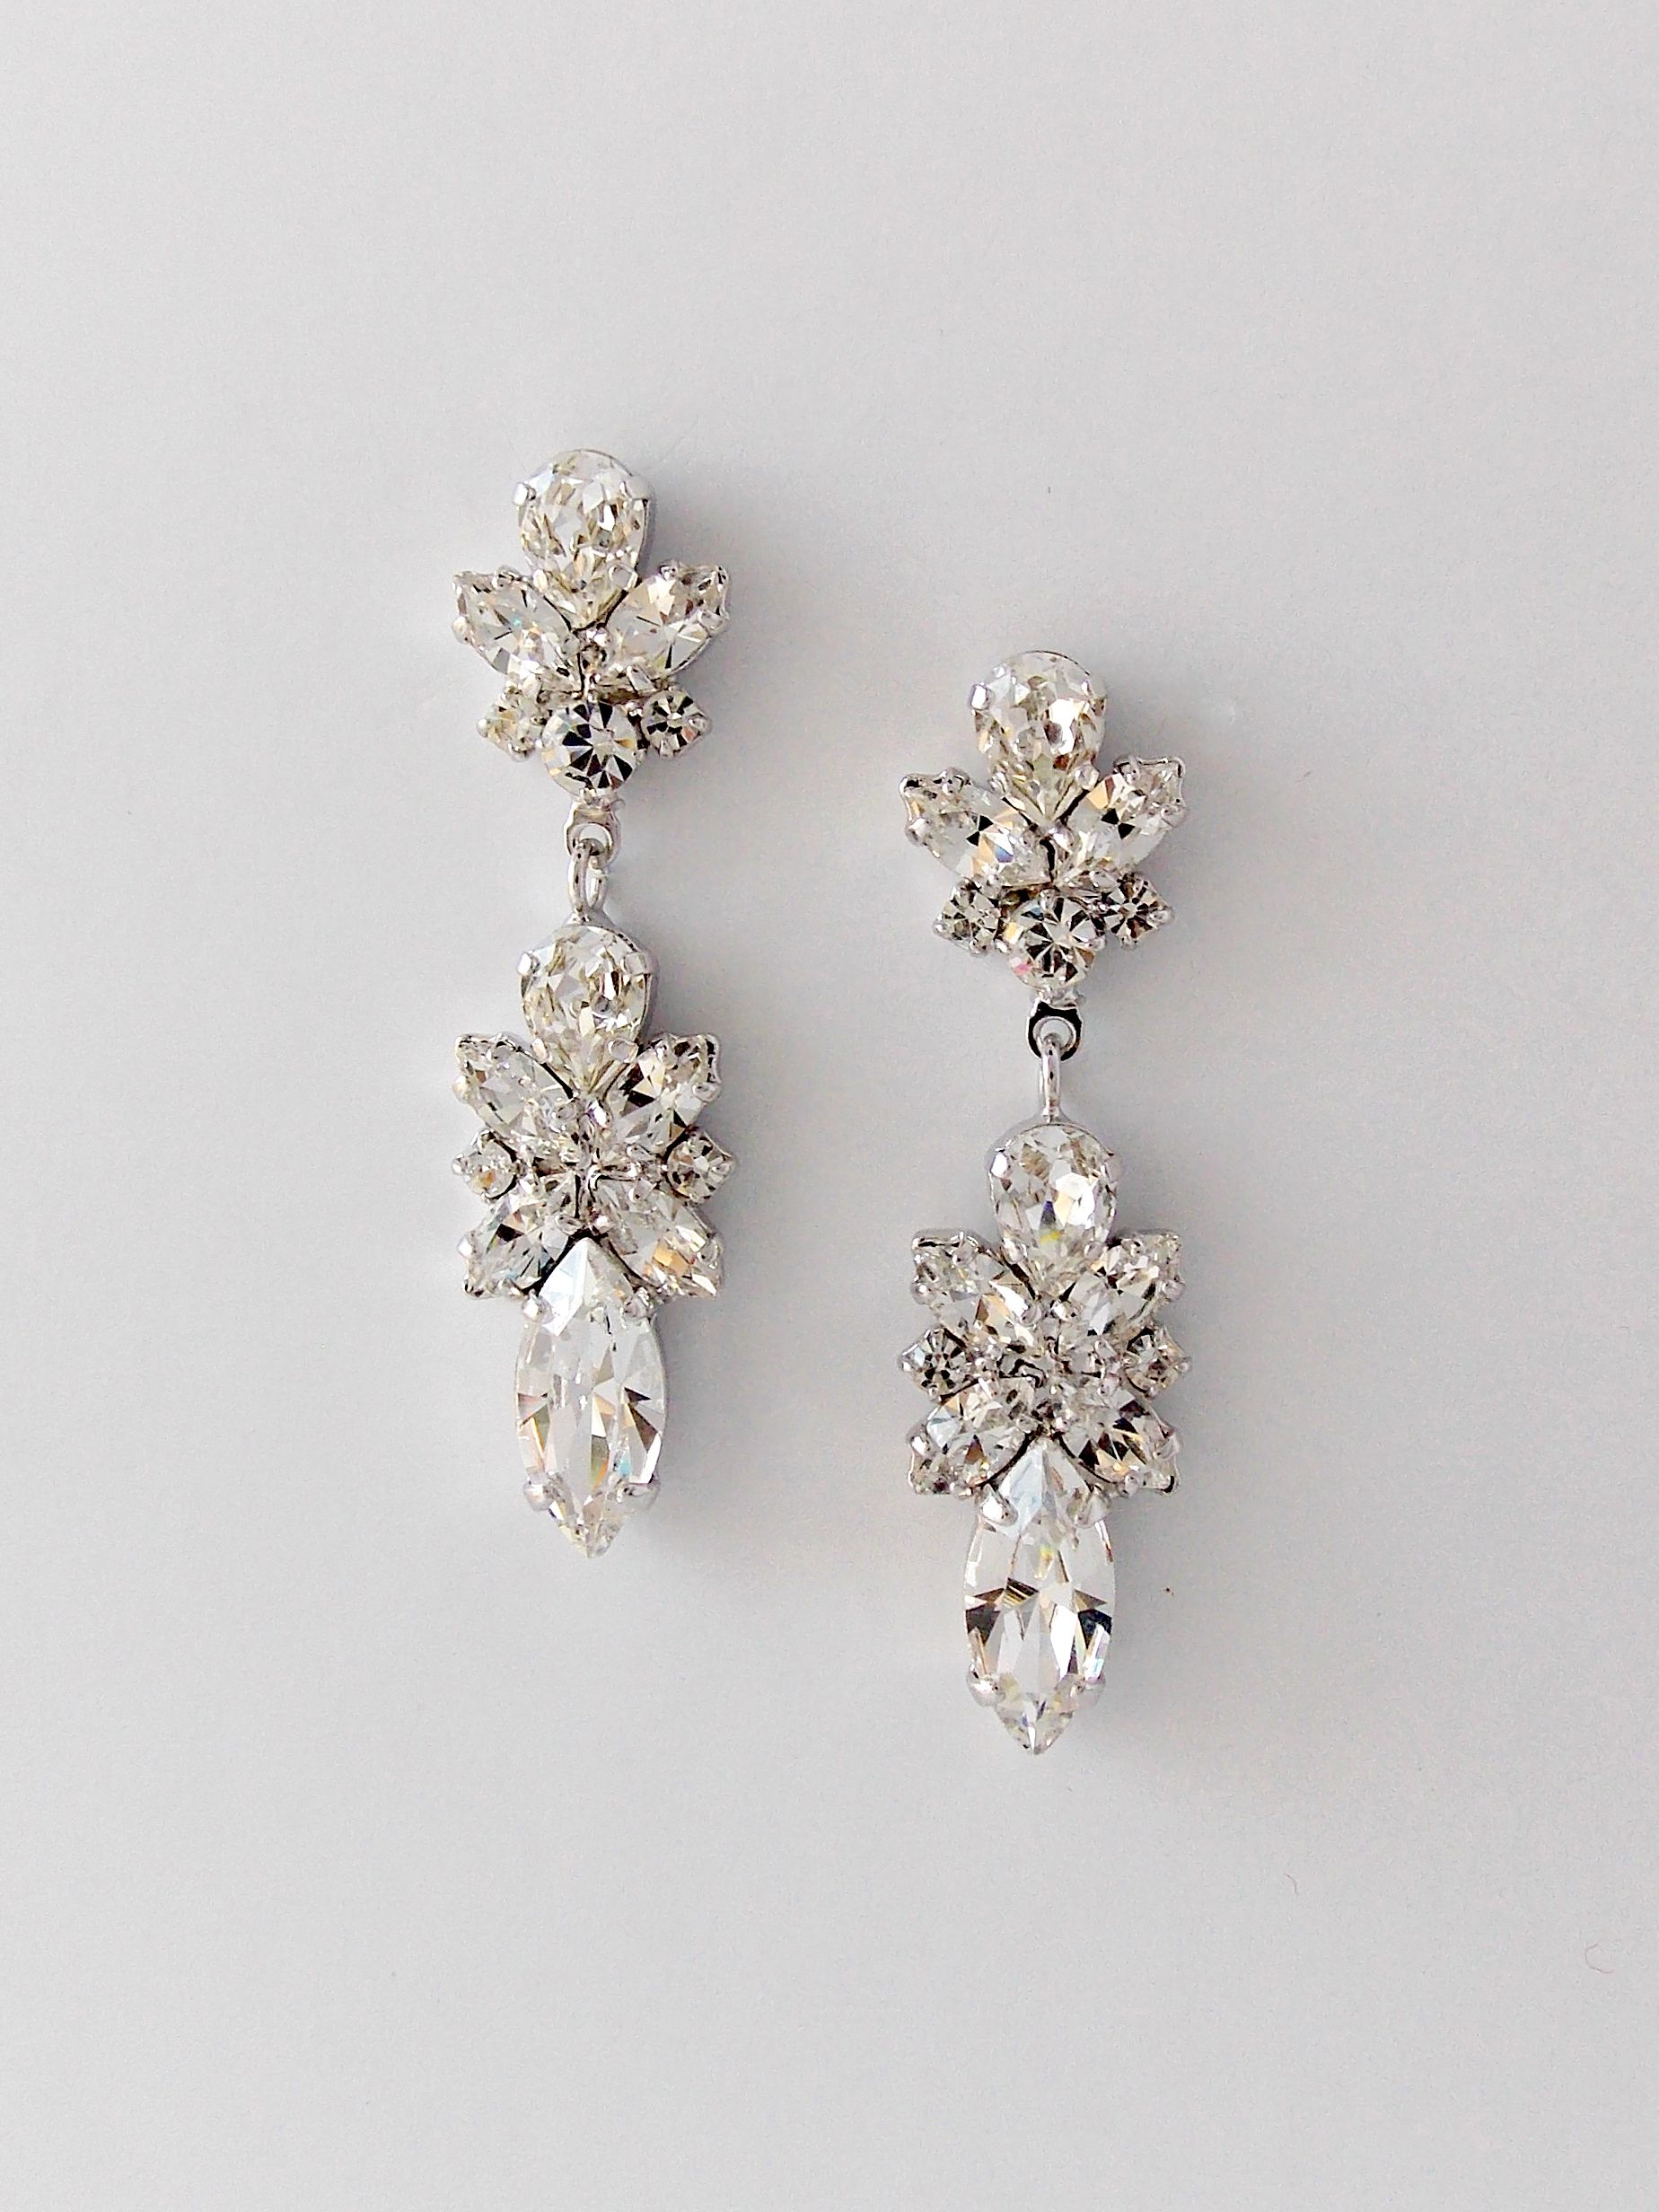 869334f22900dd MALLORY EARRINGS Petite and easy to wear, our crystal drop earrings make it  simple to accent your ensemble.